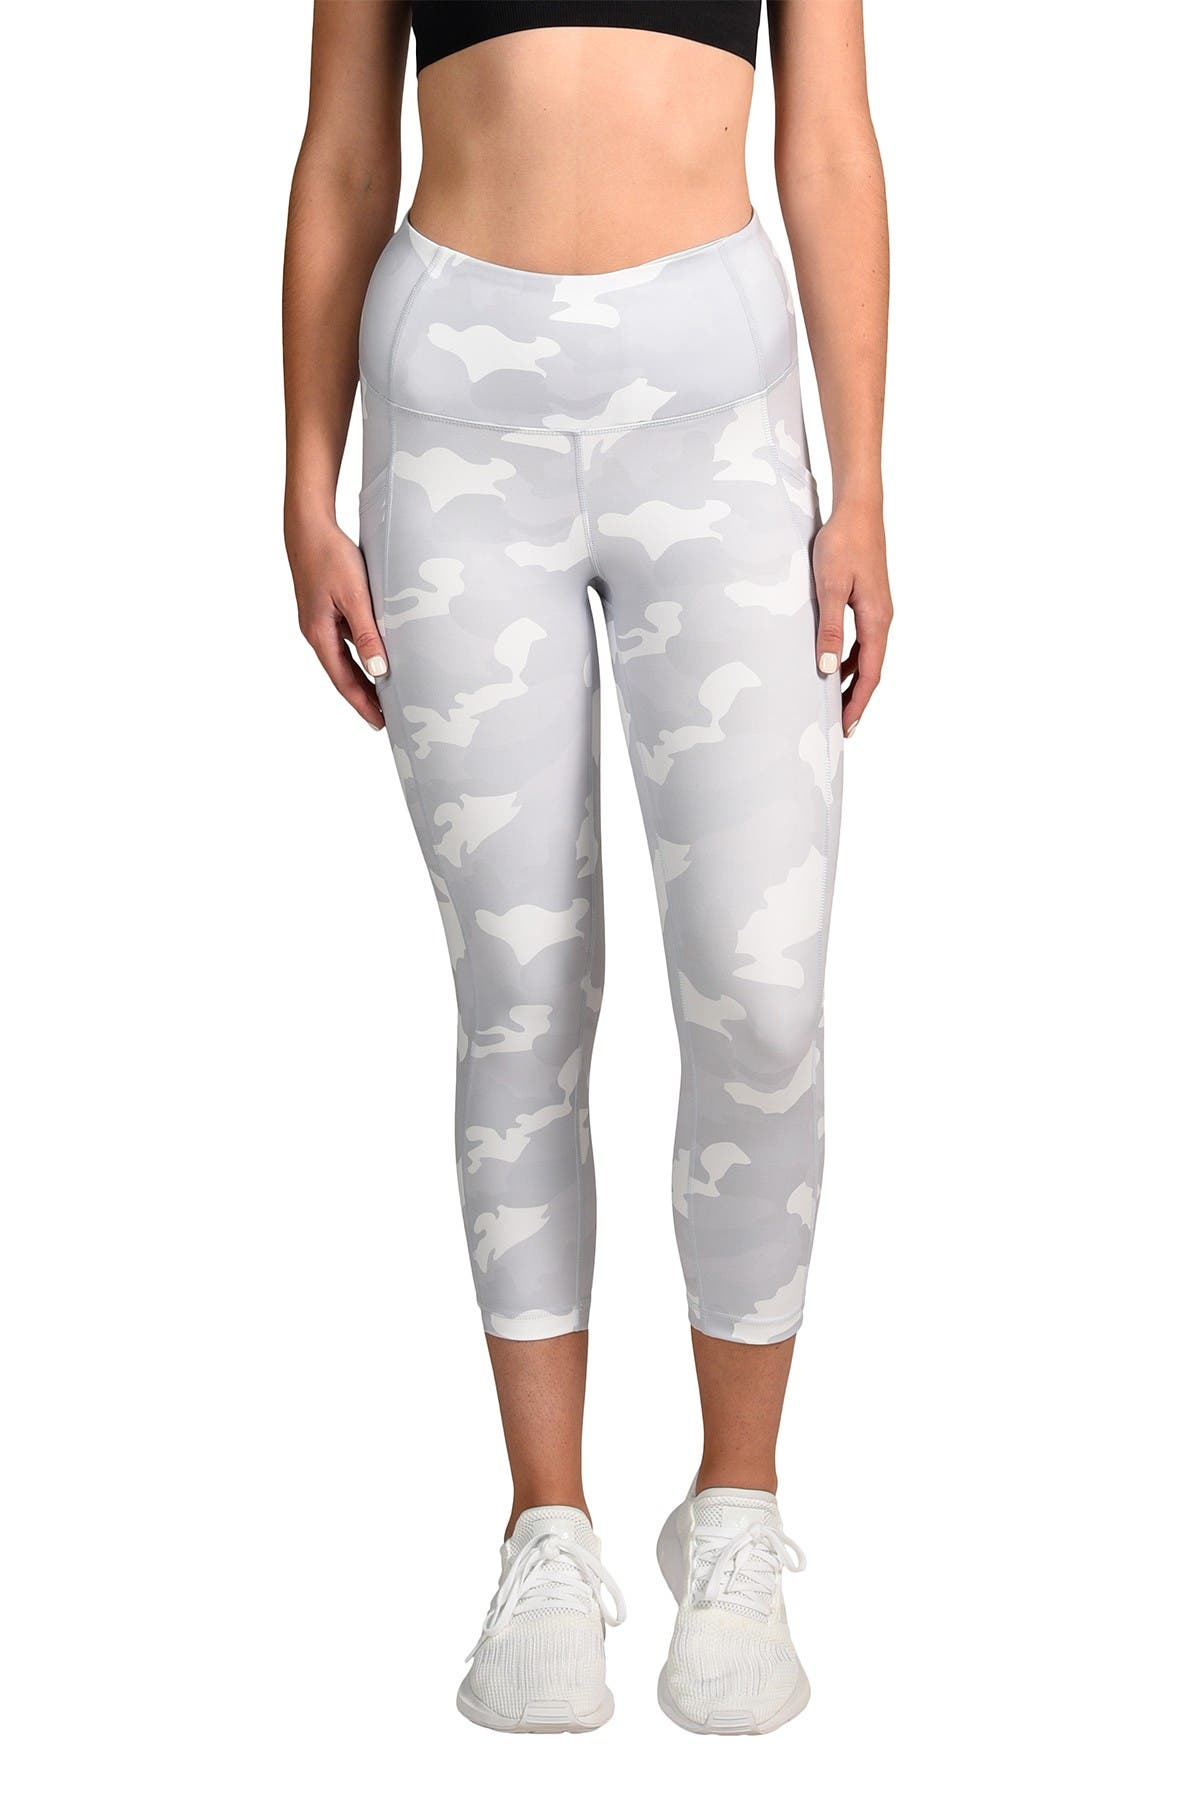 Image of 90 Degree By Reflex Lux Camo High Waist Pocket Capri Leggings